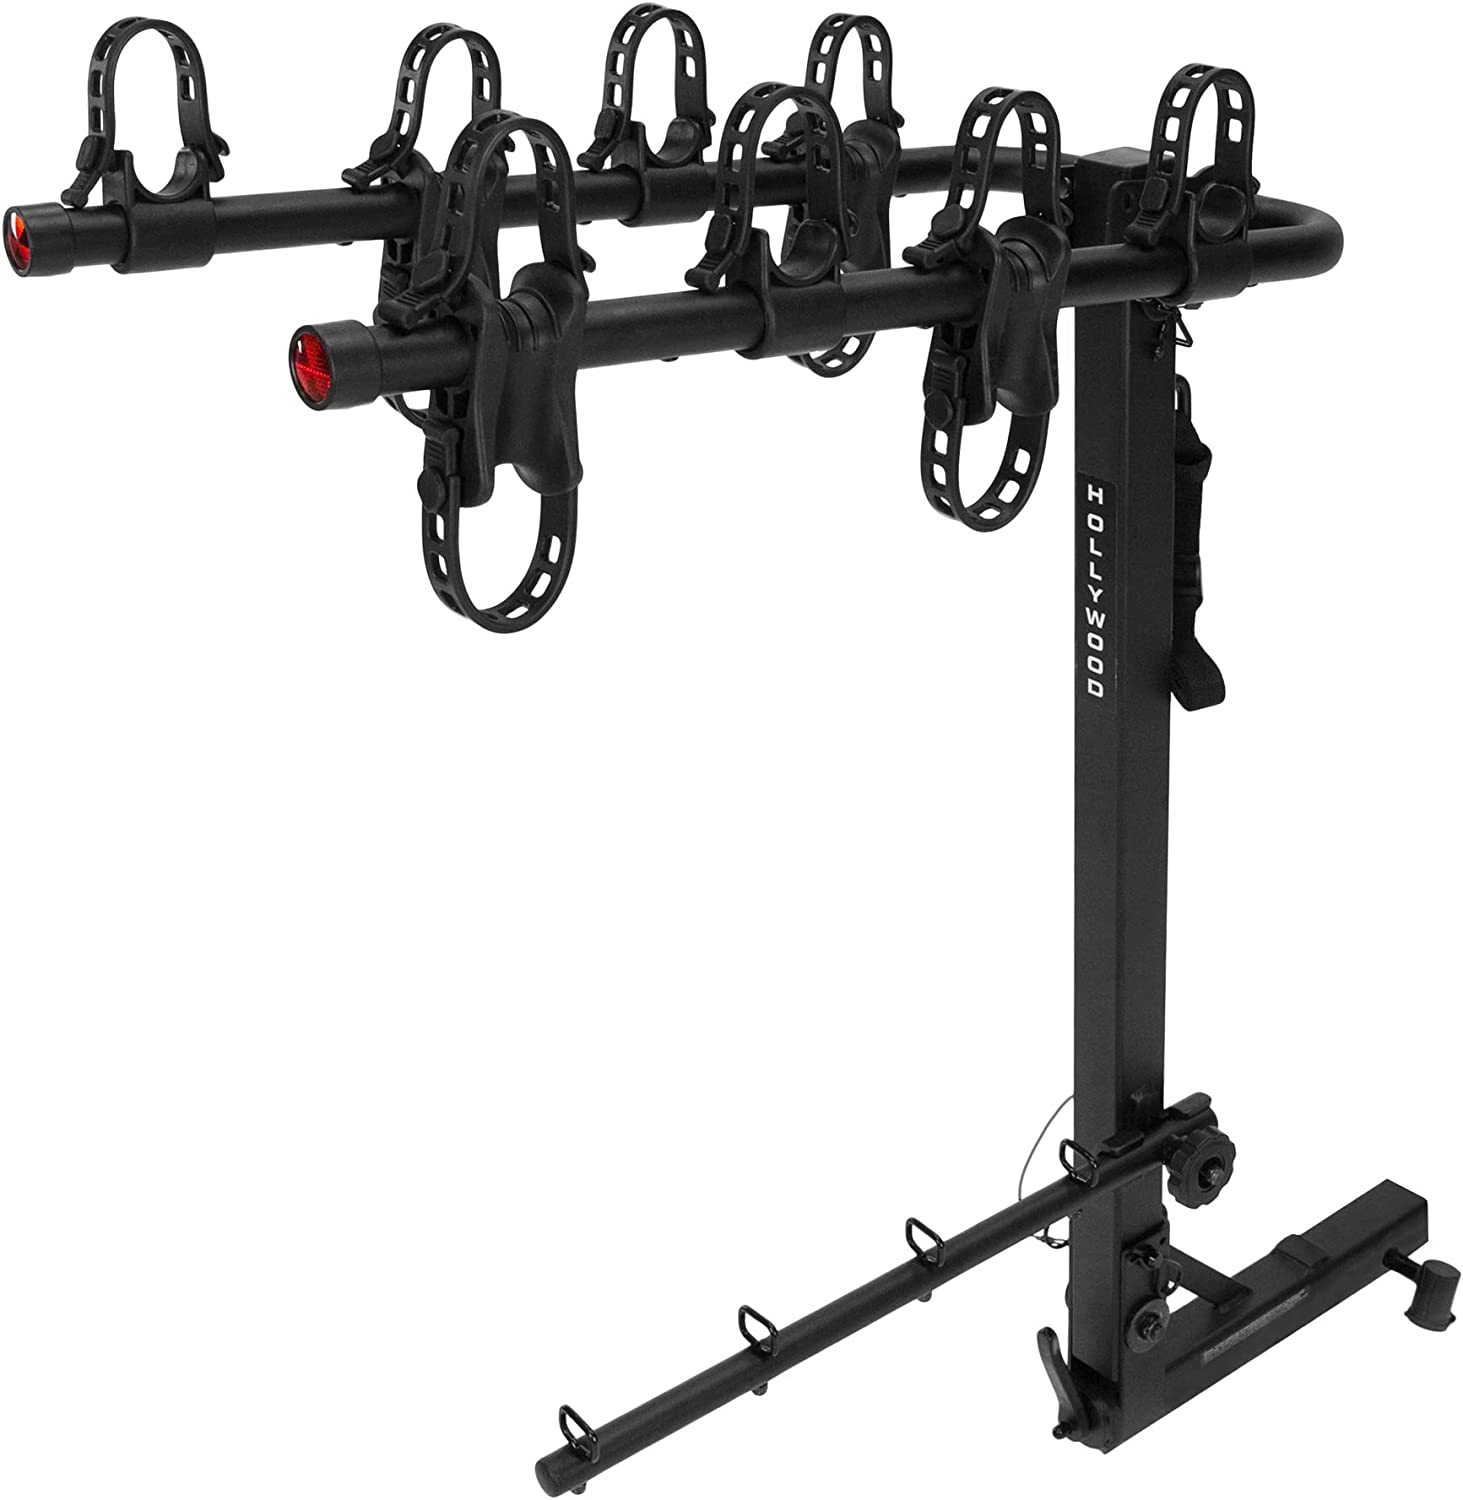 Hollywood Racks HR400 Road Runner 4-Bike Hitch Mount Rack 2-Inch Receiver